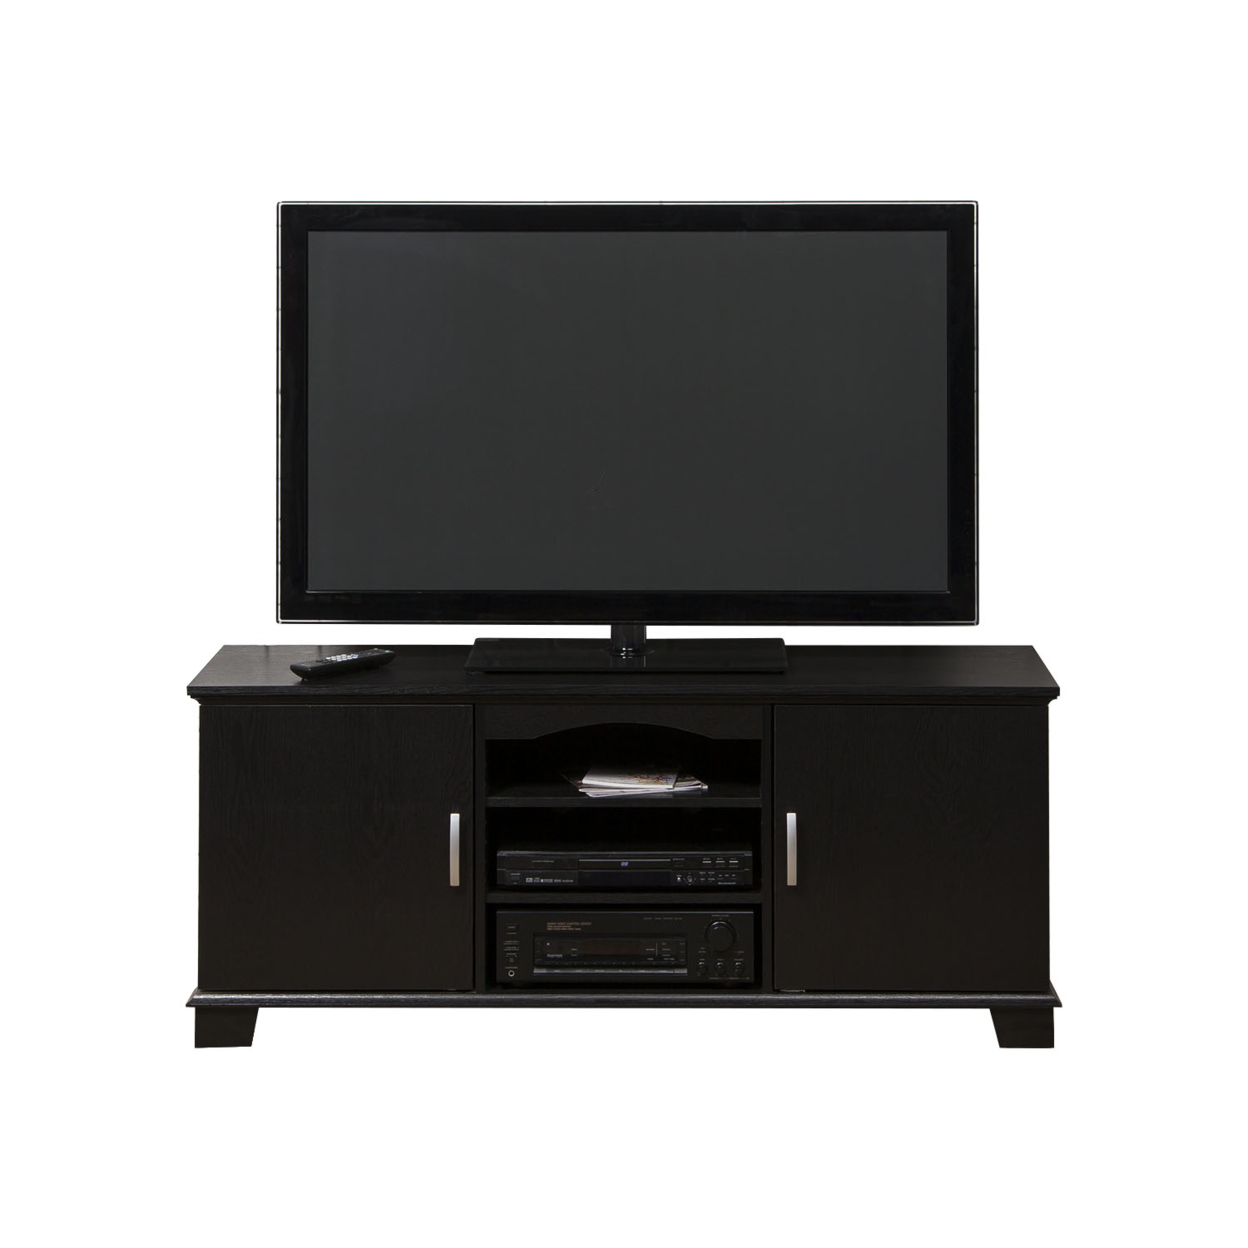 WE Furniture 60 Wood TV Media Stand Storage Console - Black crosley cambridge 60 in low profile tv stand black